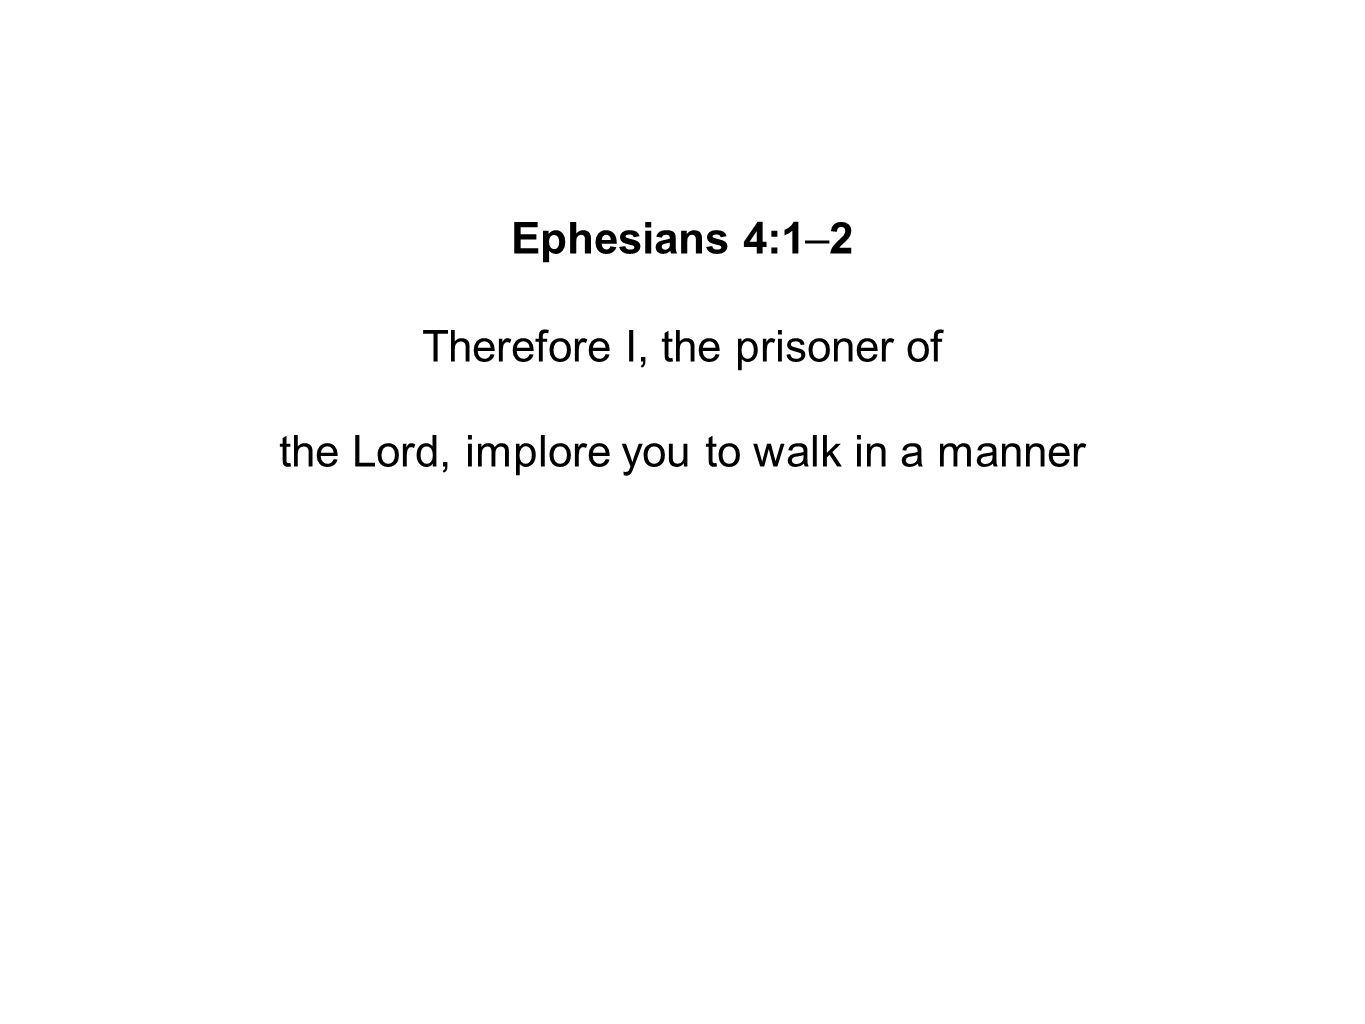 Ephesians 4:1–2 Therefore I, the prisoner of the Lord, implore you to walk in a manner